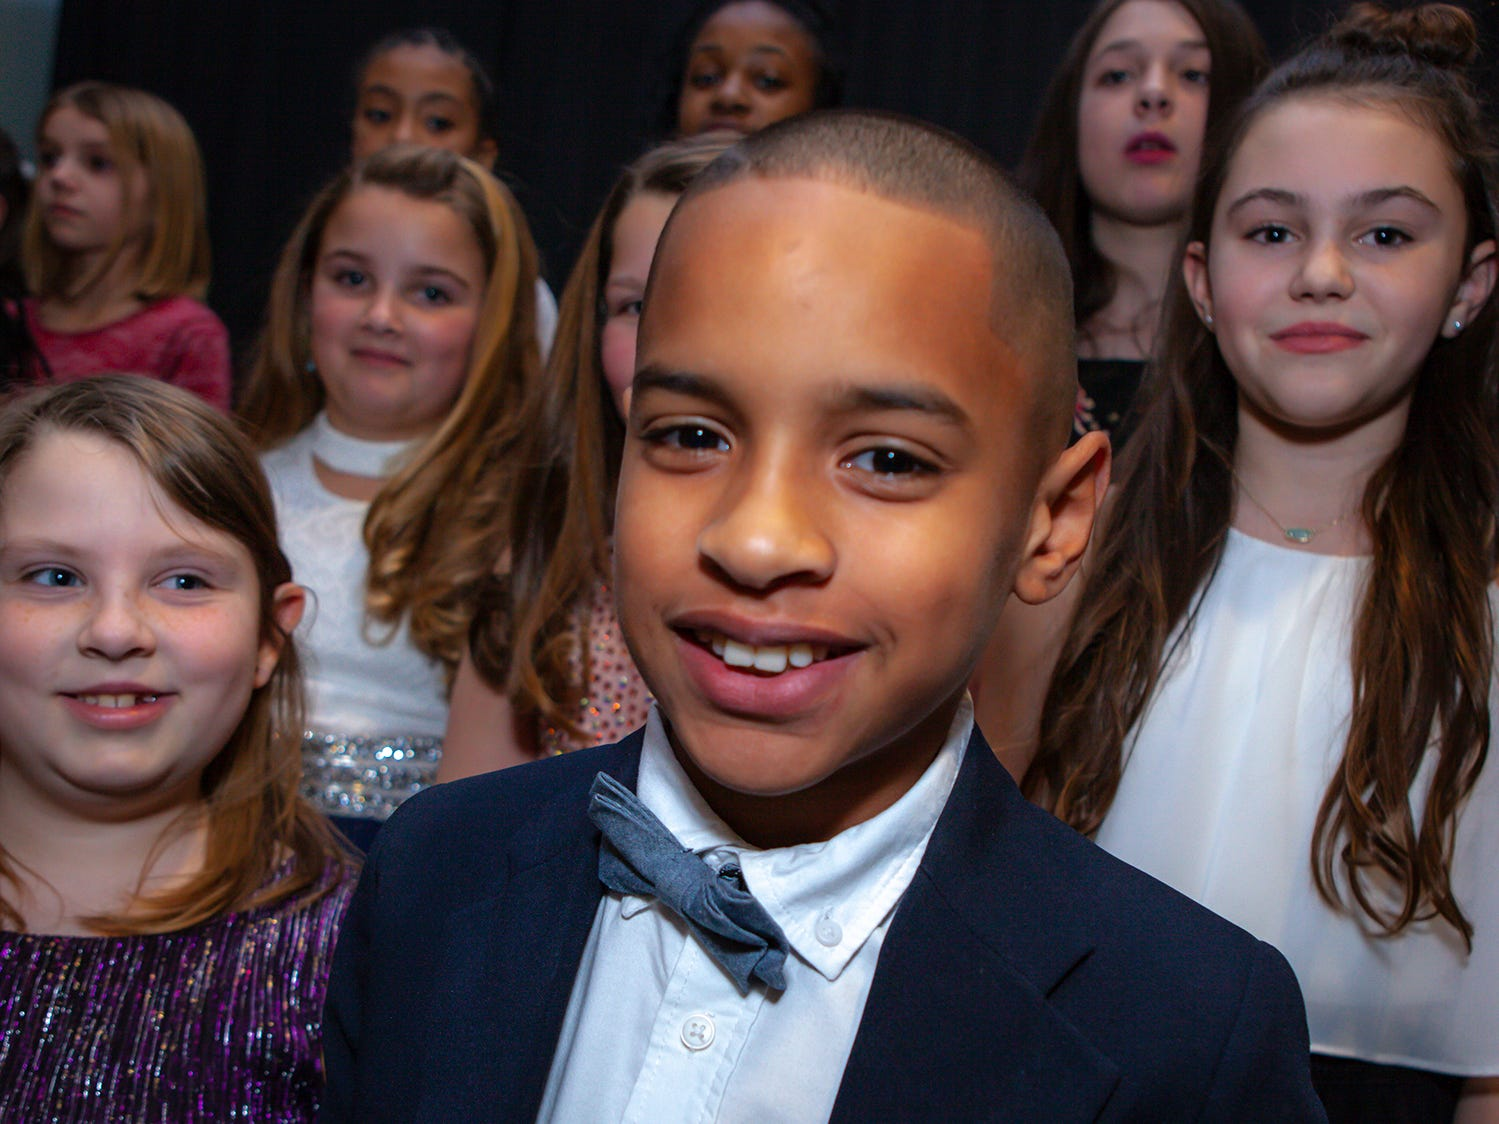 Brylan Odour, a fourth-grade student at Overall Creek Elementary, performed with the chouris at the 2019 Excellence in Education Gala, hosted by the City Schools Foundation on Friday, Jan. 25, 2019 at Stones River Country Club in Murfreesboro